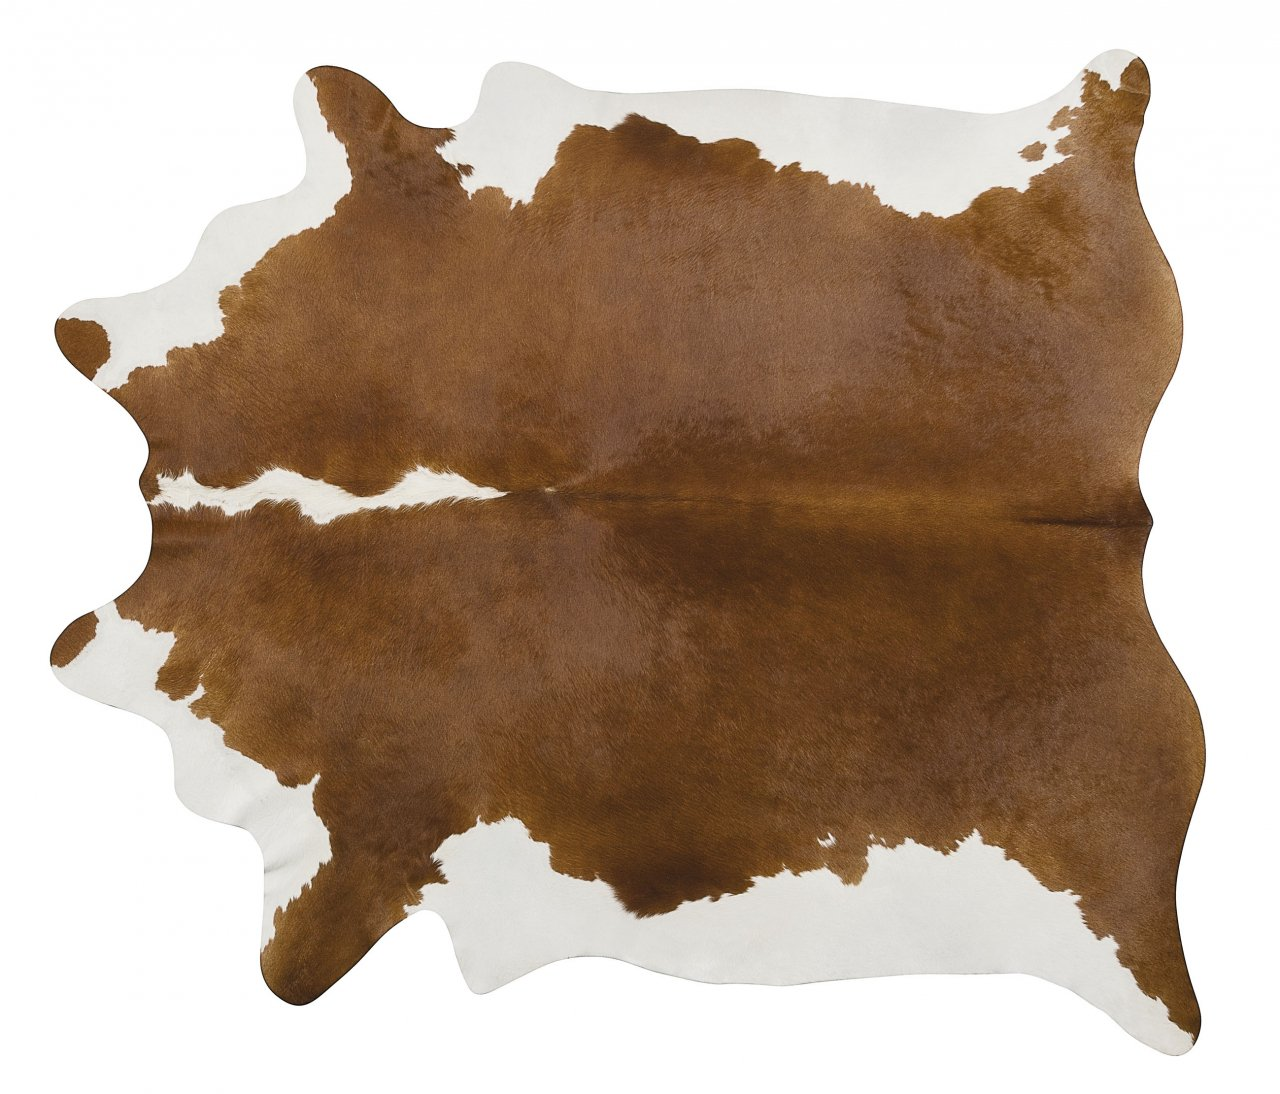 Hereford Brazilian Cowhide Rug Cow Hide Area Rugs Leather - Size XL